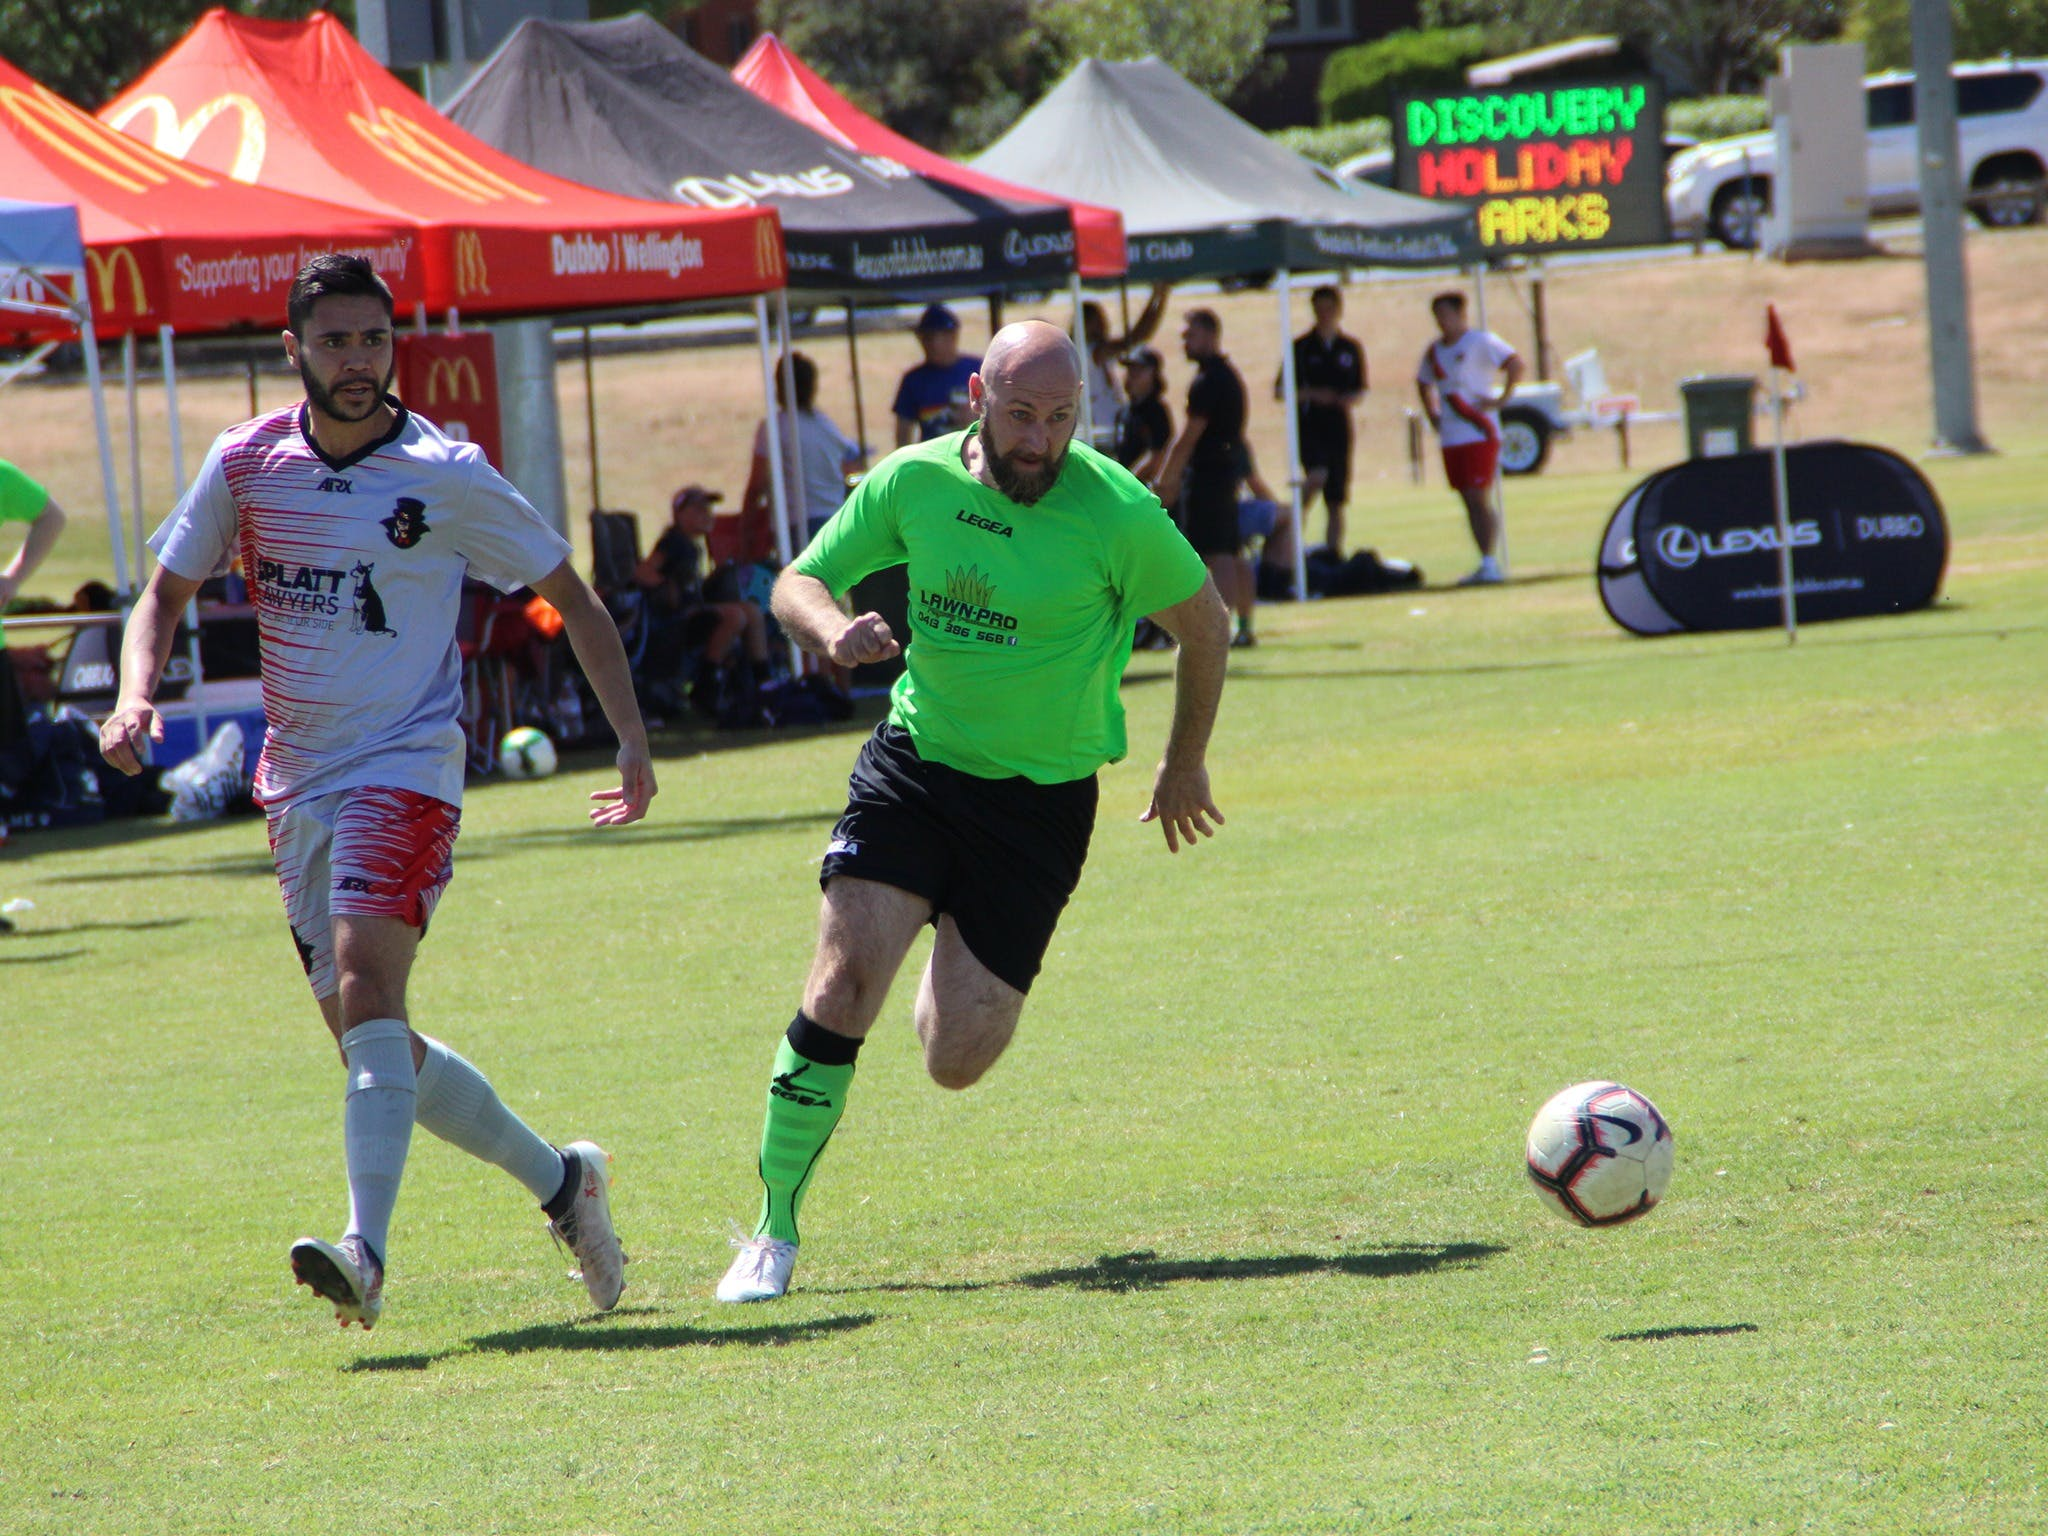 Dubbo Sixes Soccer Tournament - Whitsundays Tourism